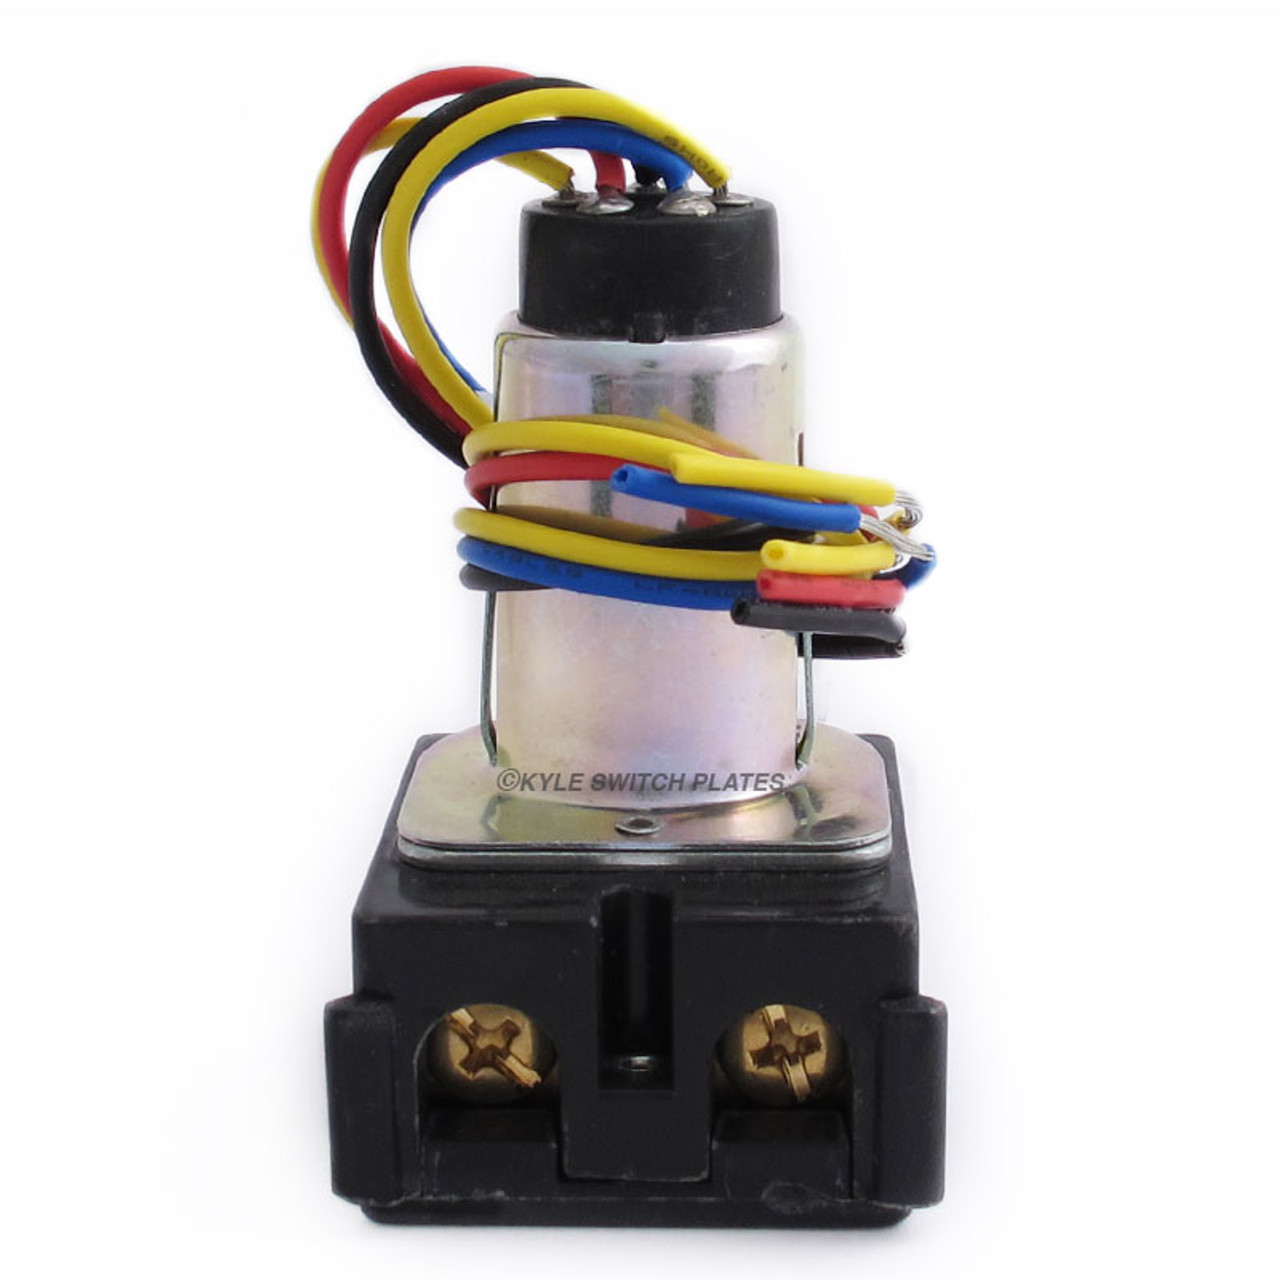 GE RR9 Low Voltage Pilot Light Remote Control Relay Switch RR9BPB | Ge Relay Wiring Diagram |  | Kyle Switch Plates